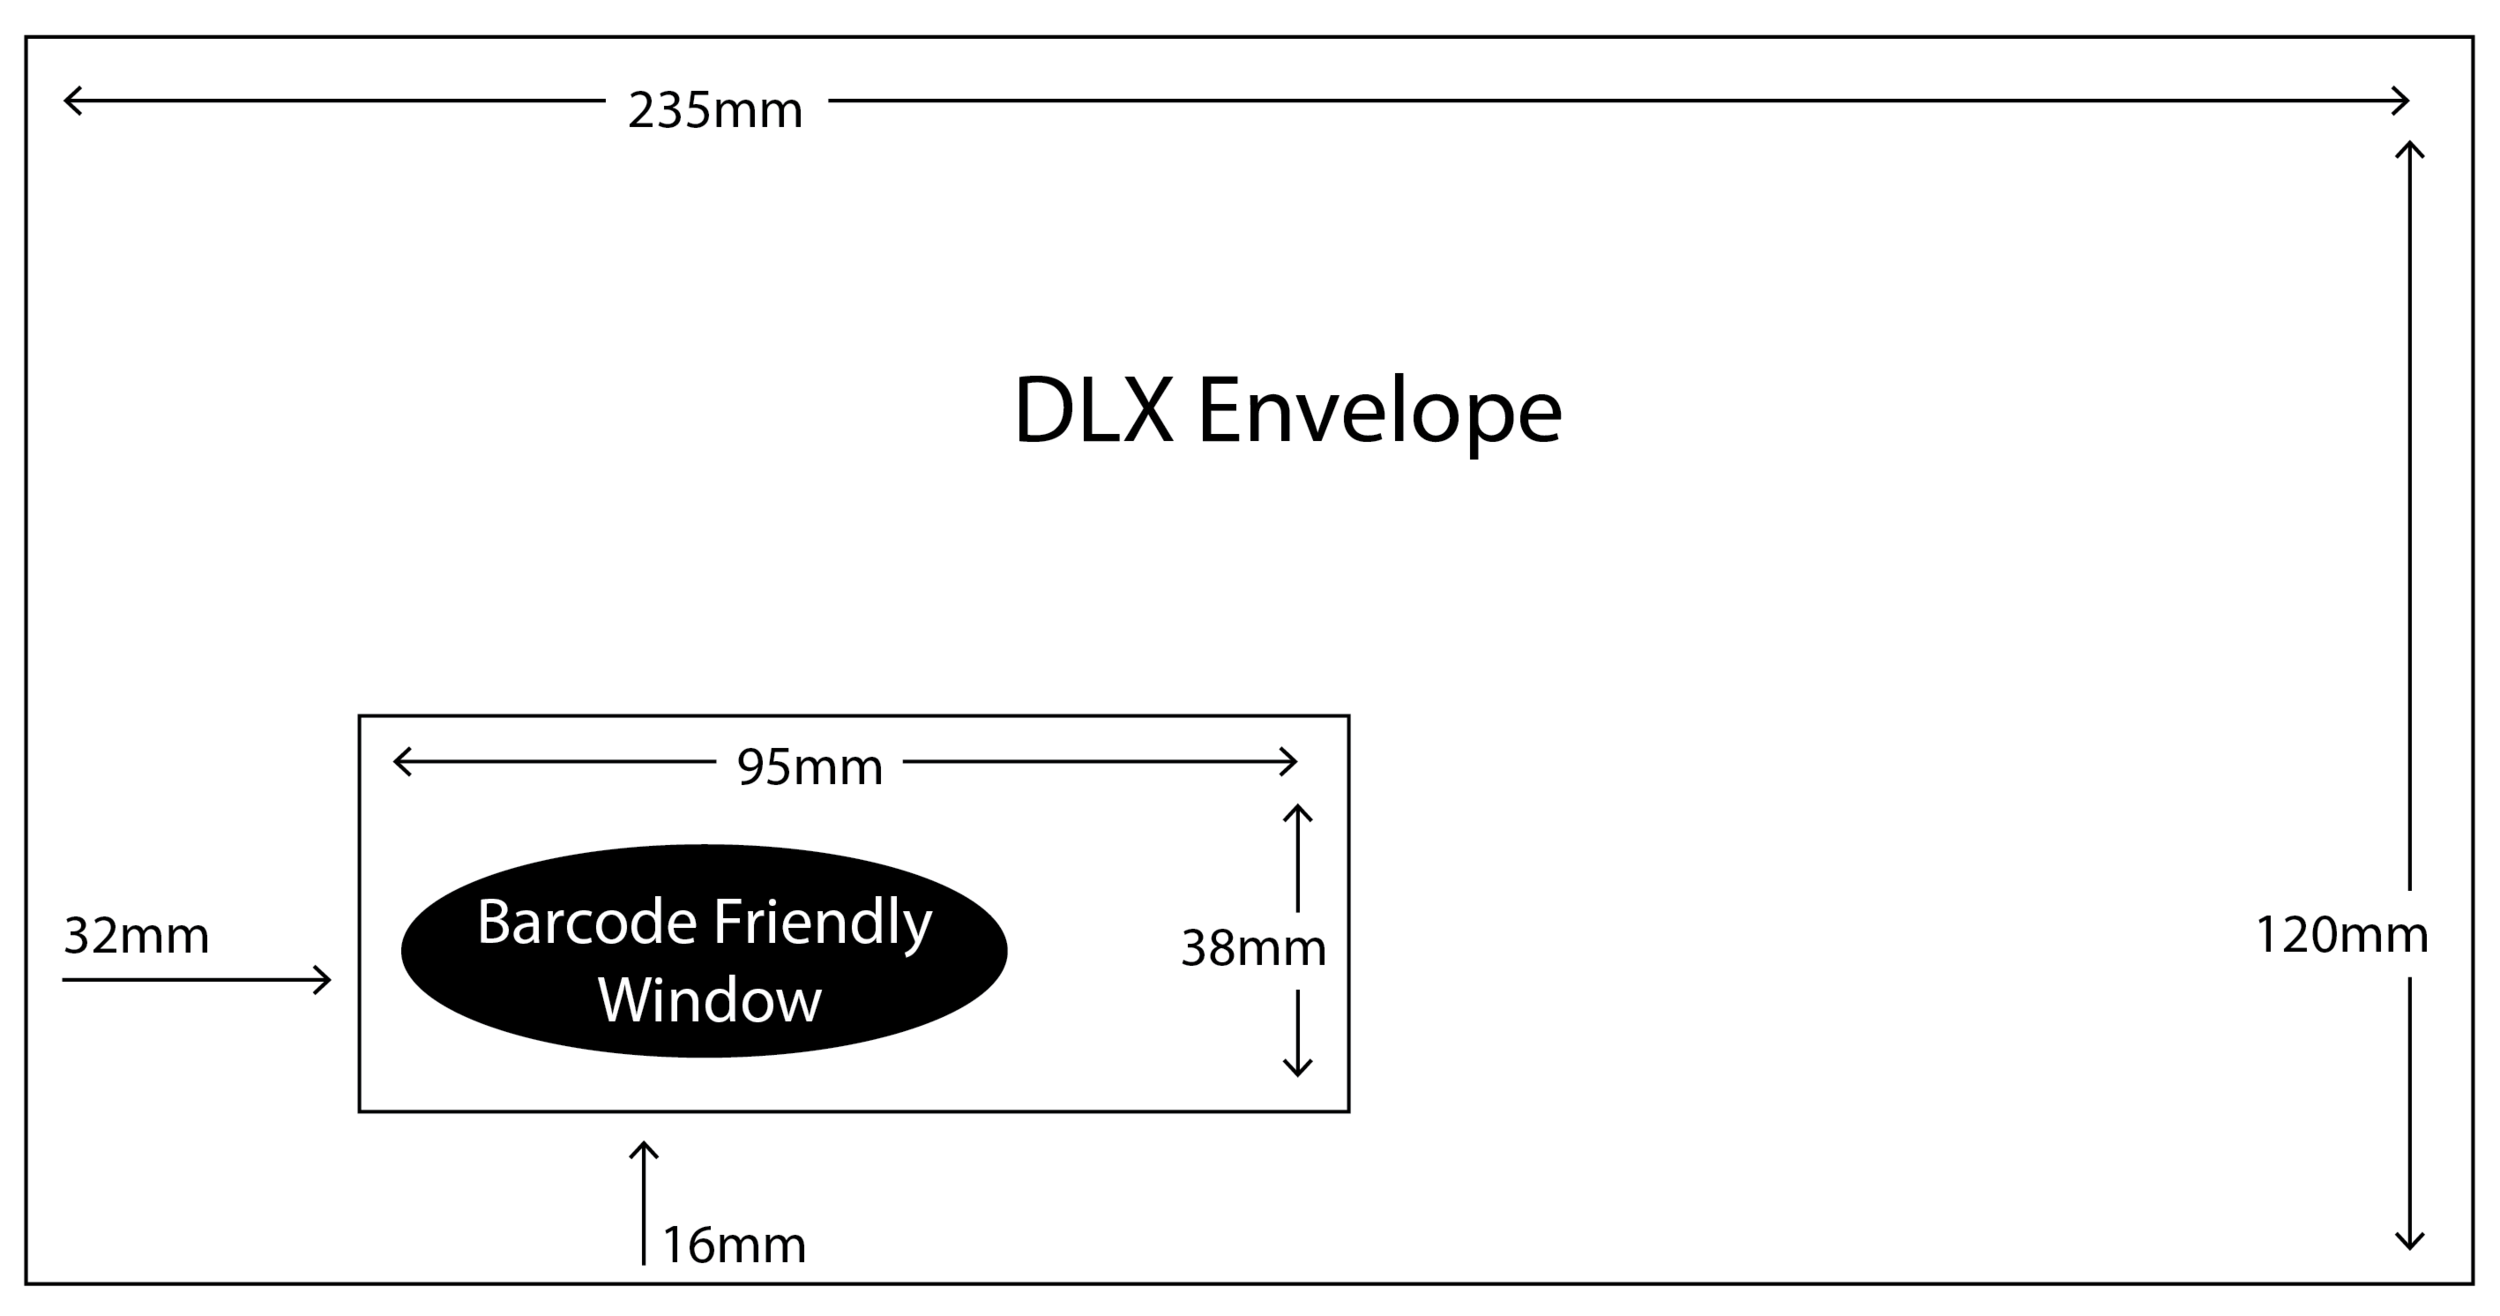 DLX Envelope with barcode friendly window size